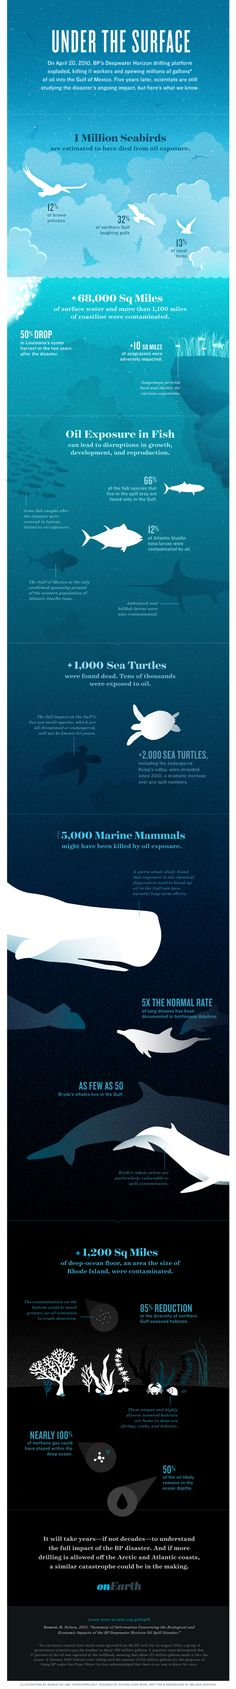 Infographic WIN. Five years into the Gulf oil disaster, scientists are still studying its impact on birds, whales, sea turtles, and other marine life—and the critical ecosystems beneath the waves. This infographic shows what we know, and it's not encouraging, for either the Gulf or future plans for offshore drilling.